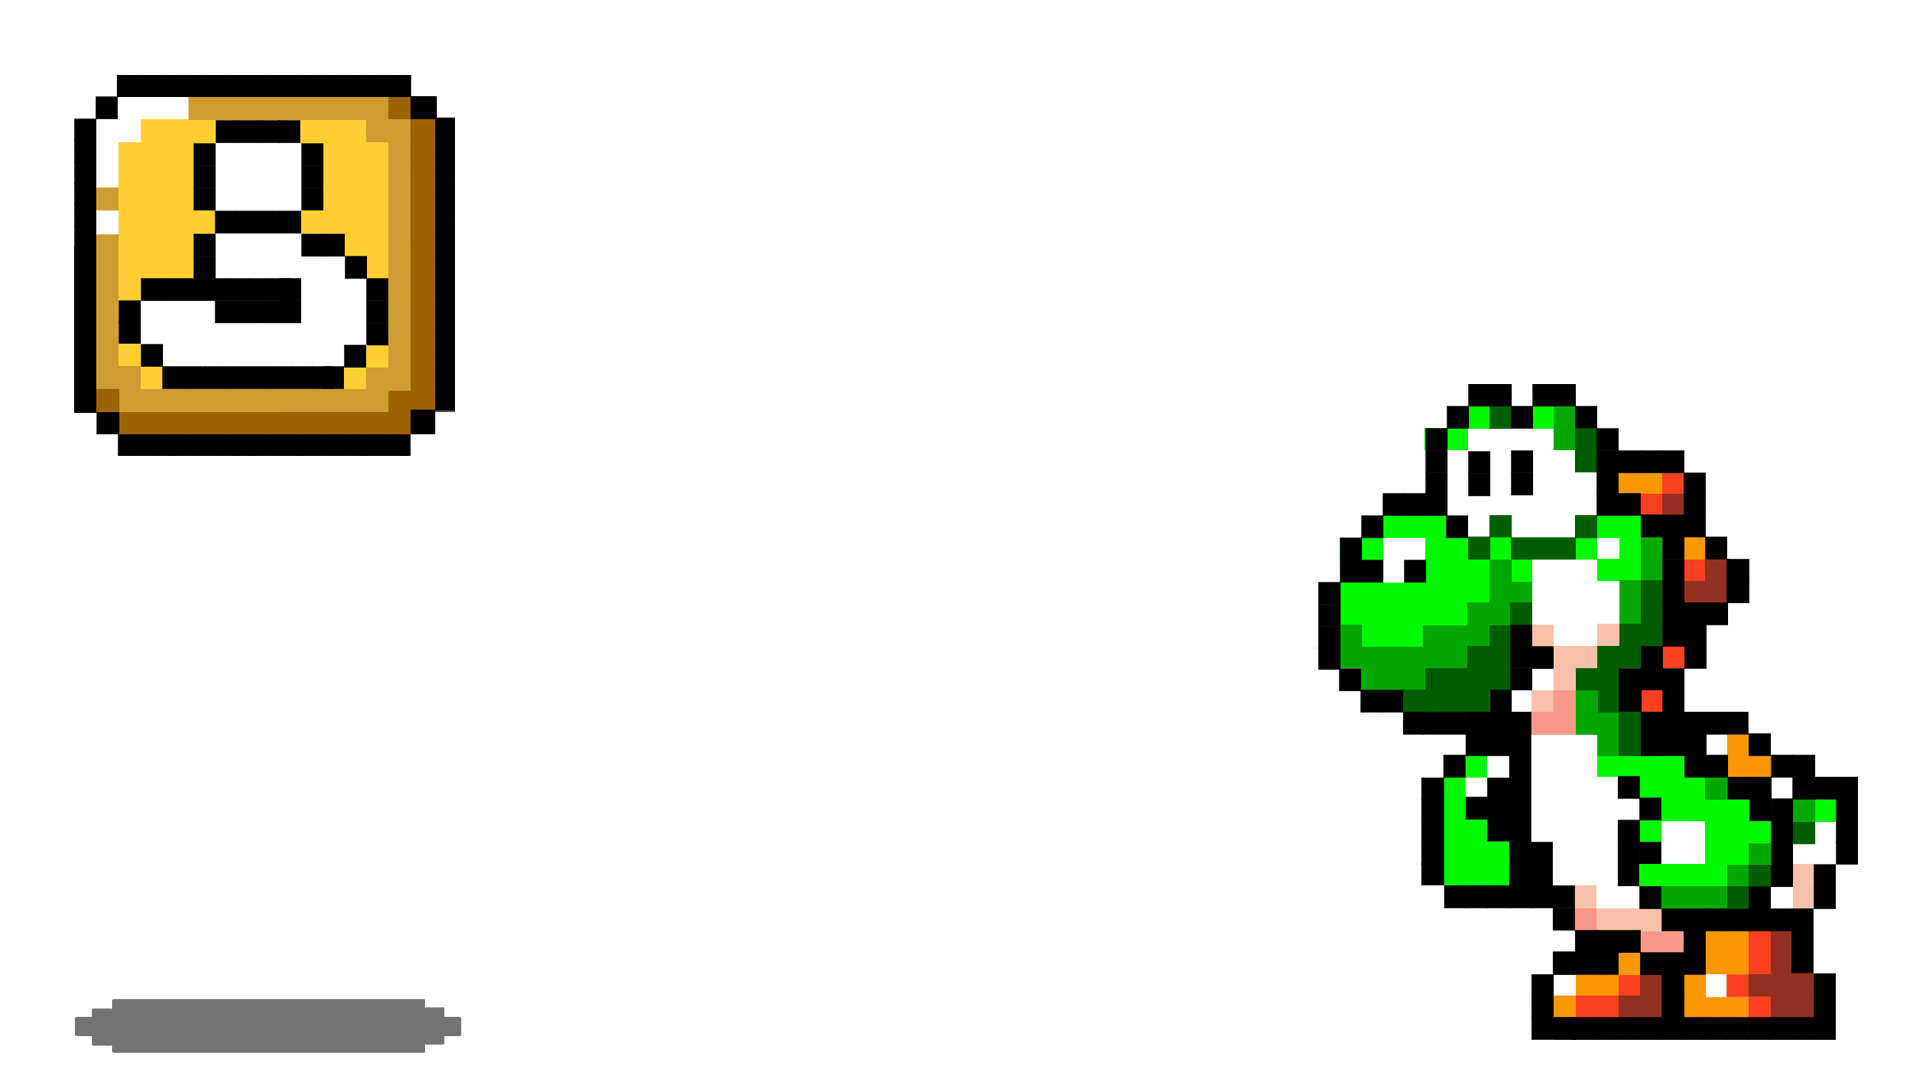 Yoshi and the Block